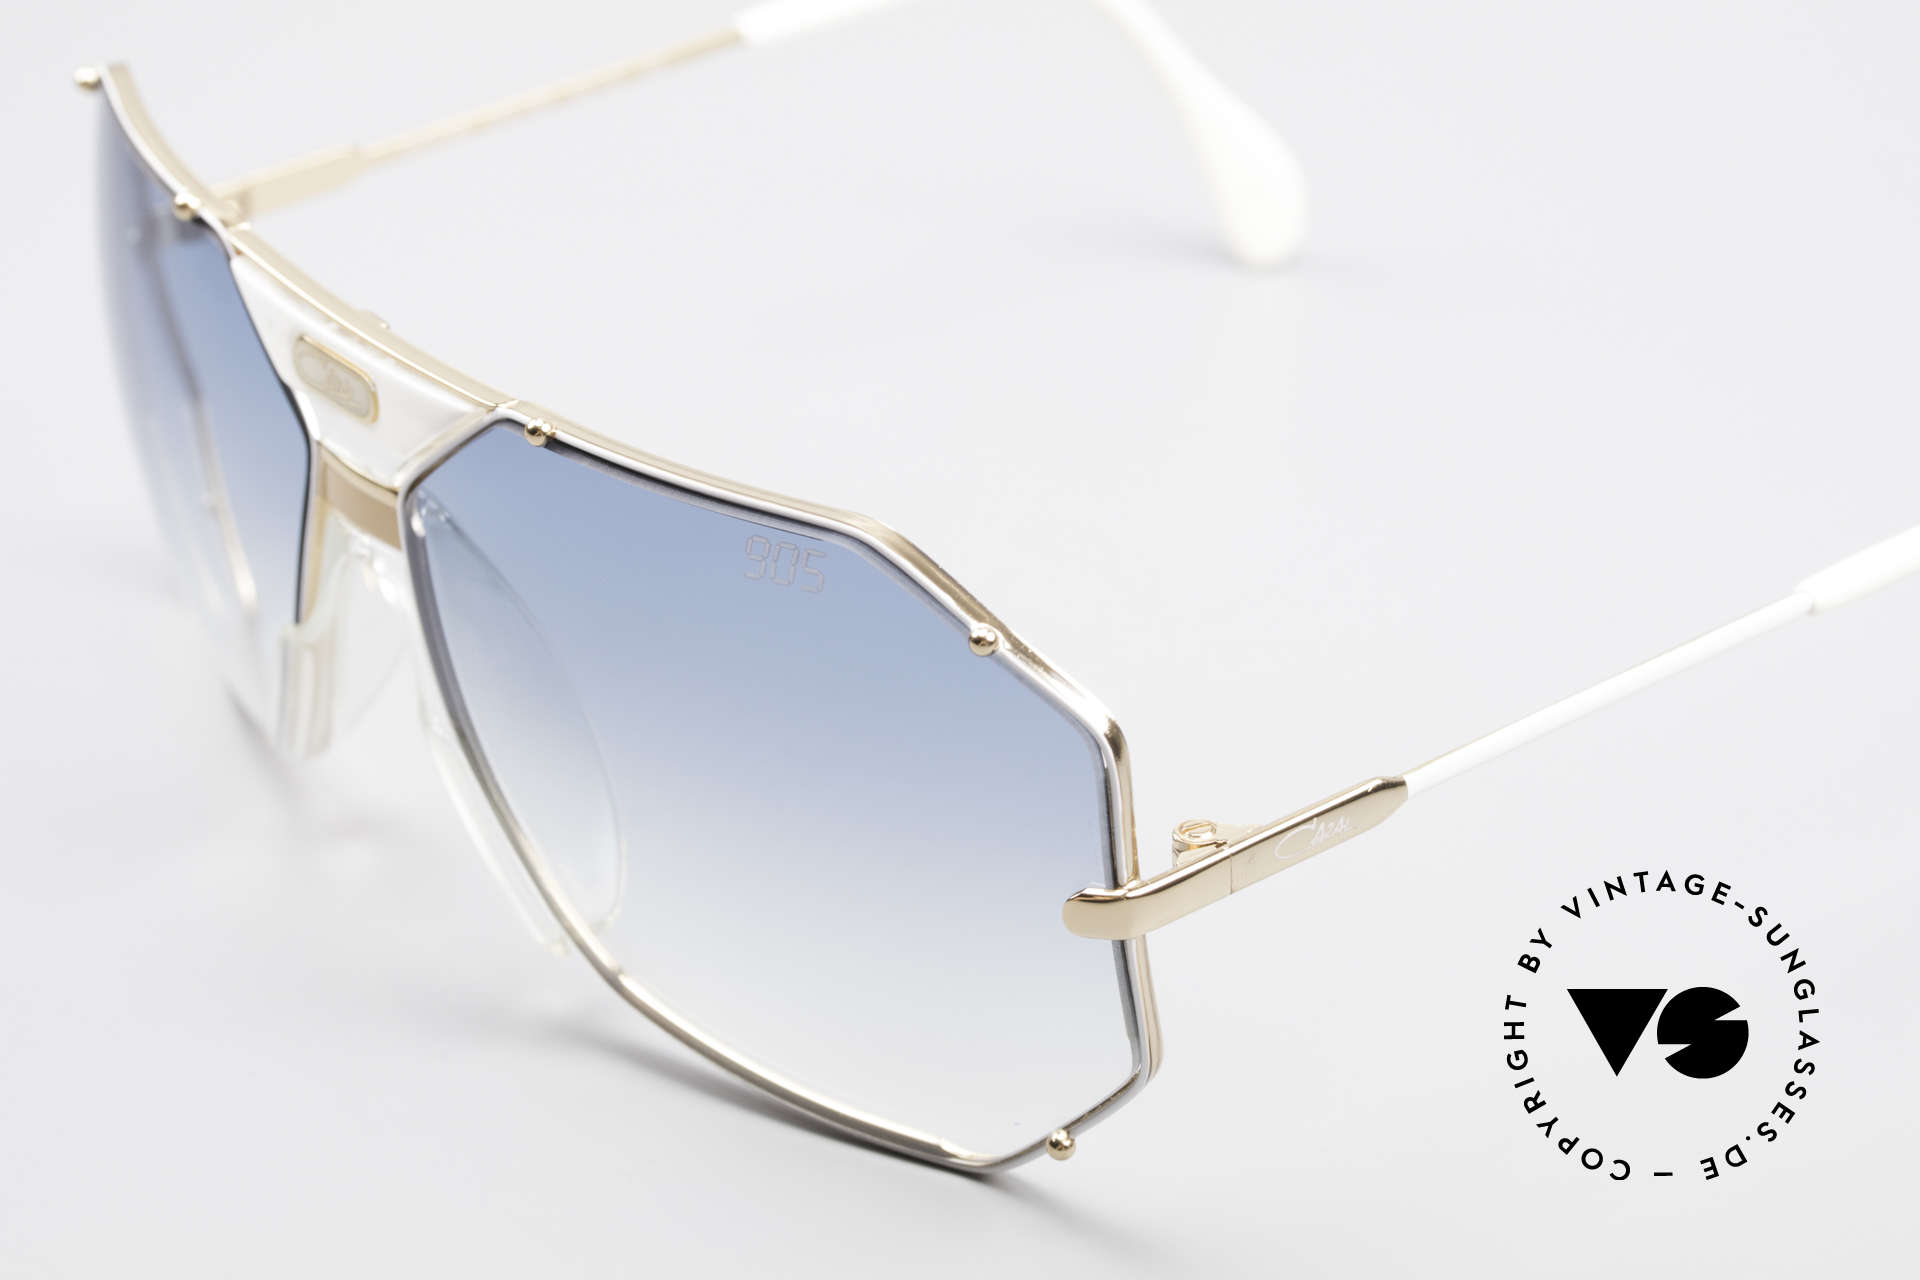 Cazal 905 Gwen Stefani Vintage Shades, true vintage rarity by Cazal & collector's item, Made for Men and Women